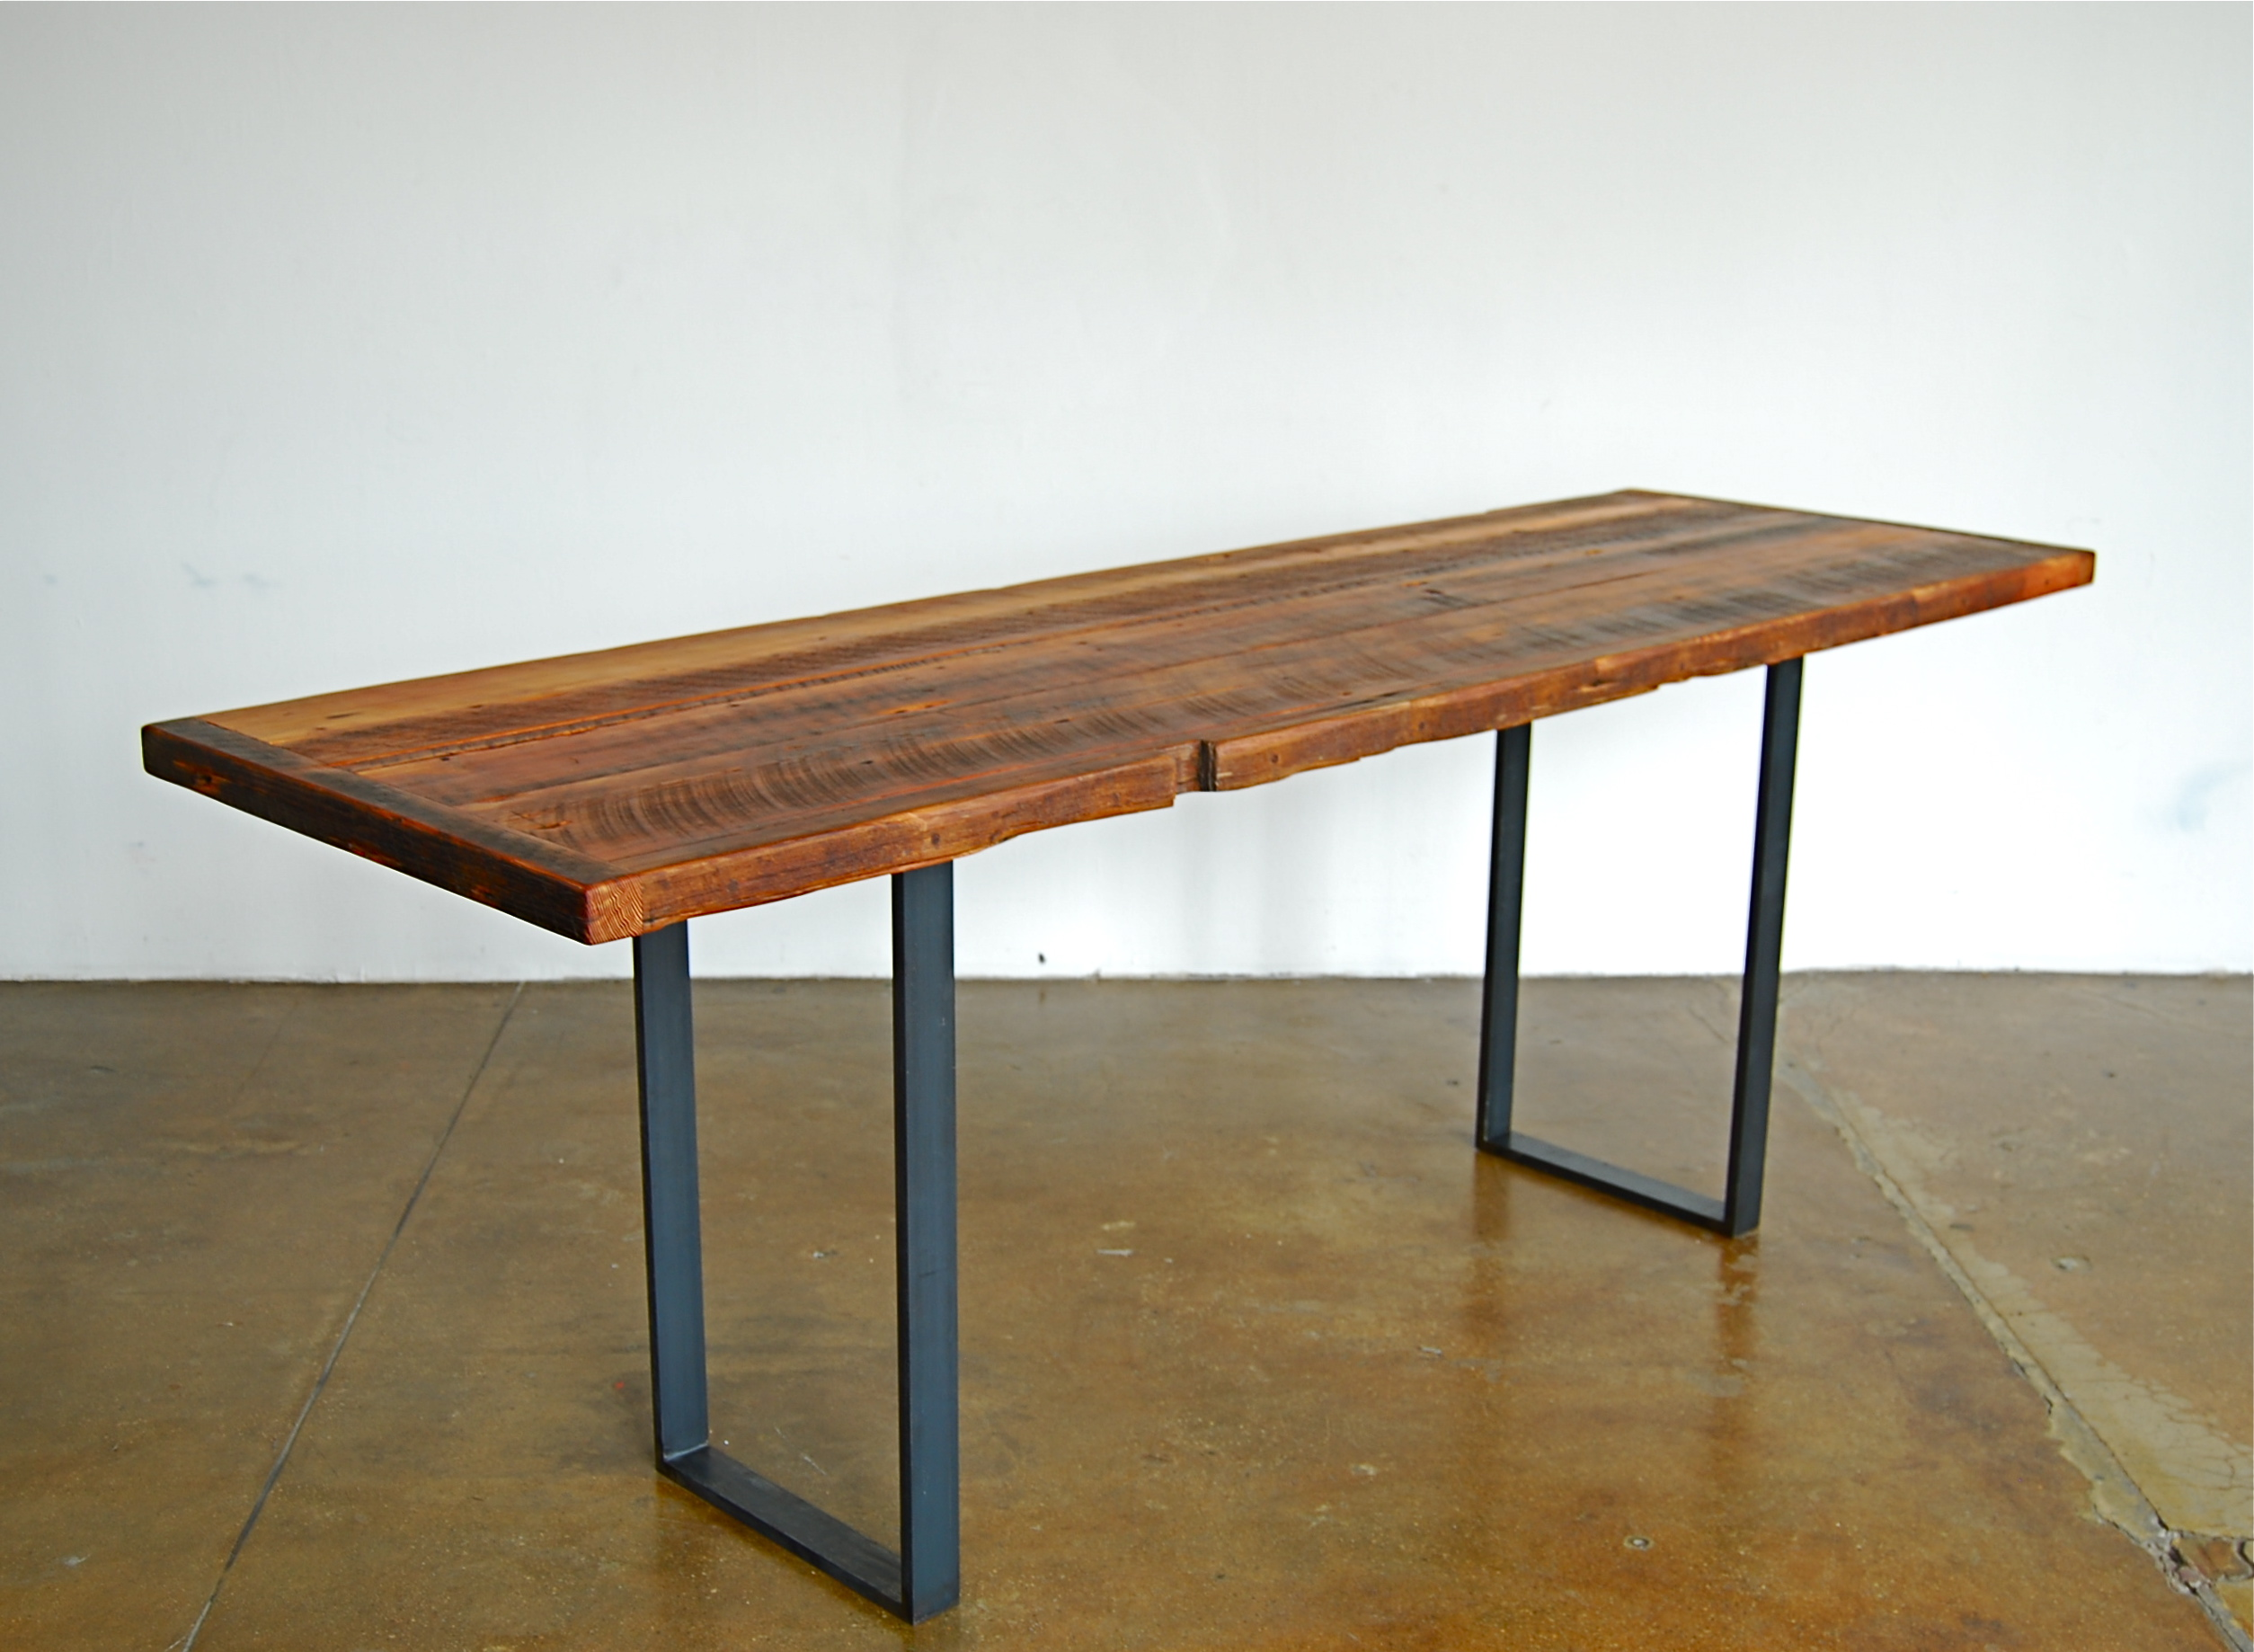 Dwelling dining tables on pinterest wood dining tables for Dining room table narrow width